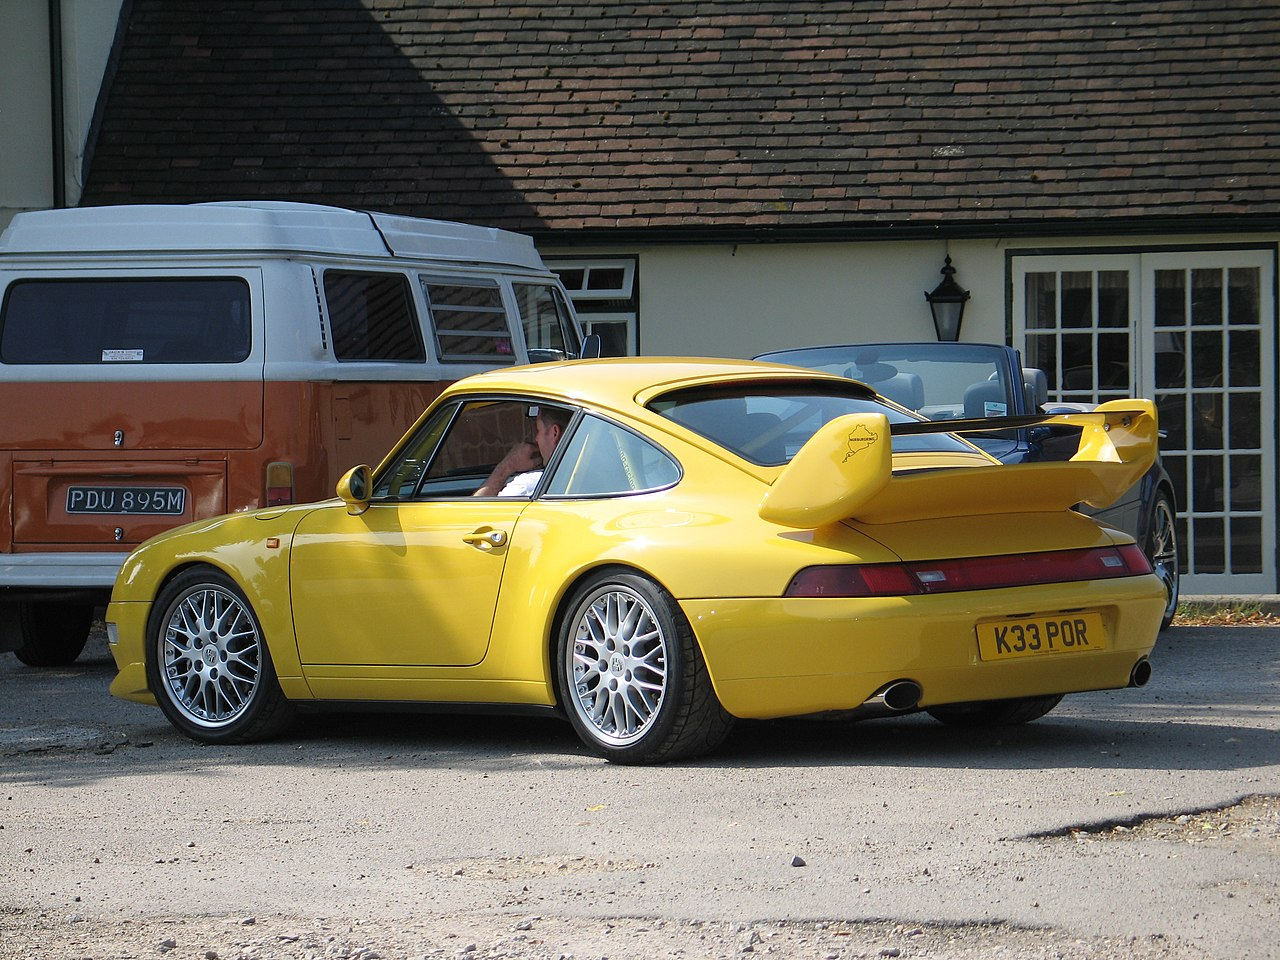 file yellow porsche 911 carrera rs type 993 clubsport rear jpg wikimedia commons. Black Bedroom Furniture Sets. Home Design Ideas